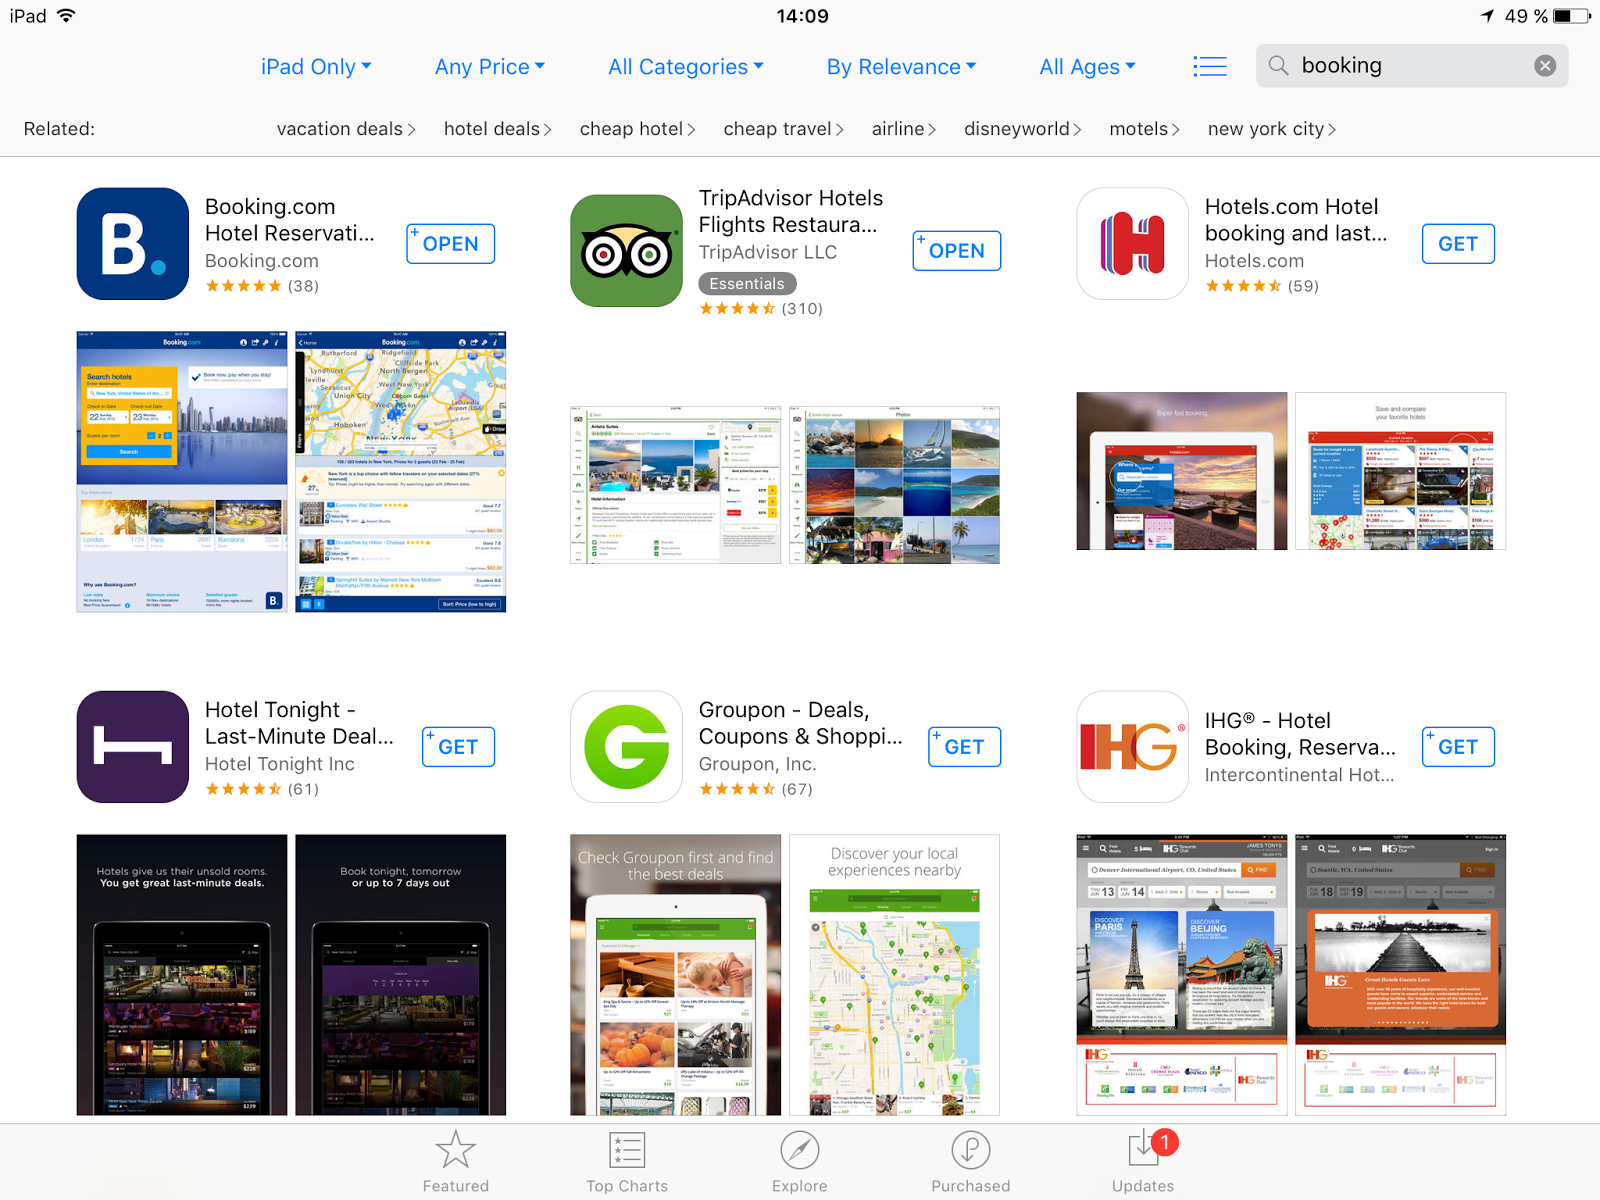 App Store search results. Only first two screenshots are displayed